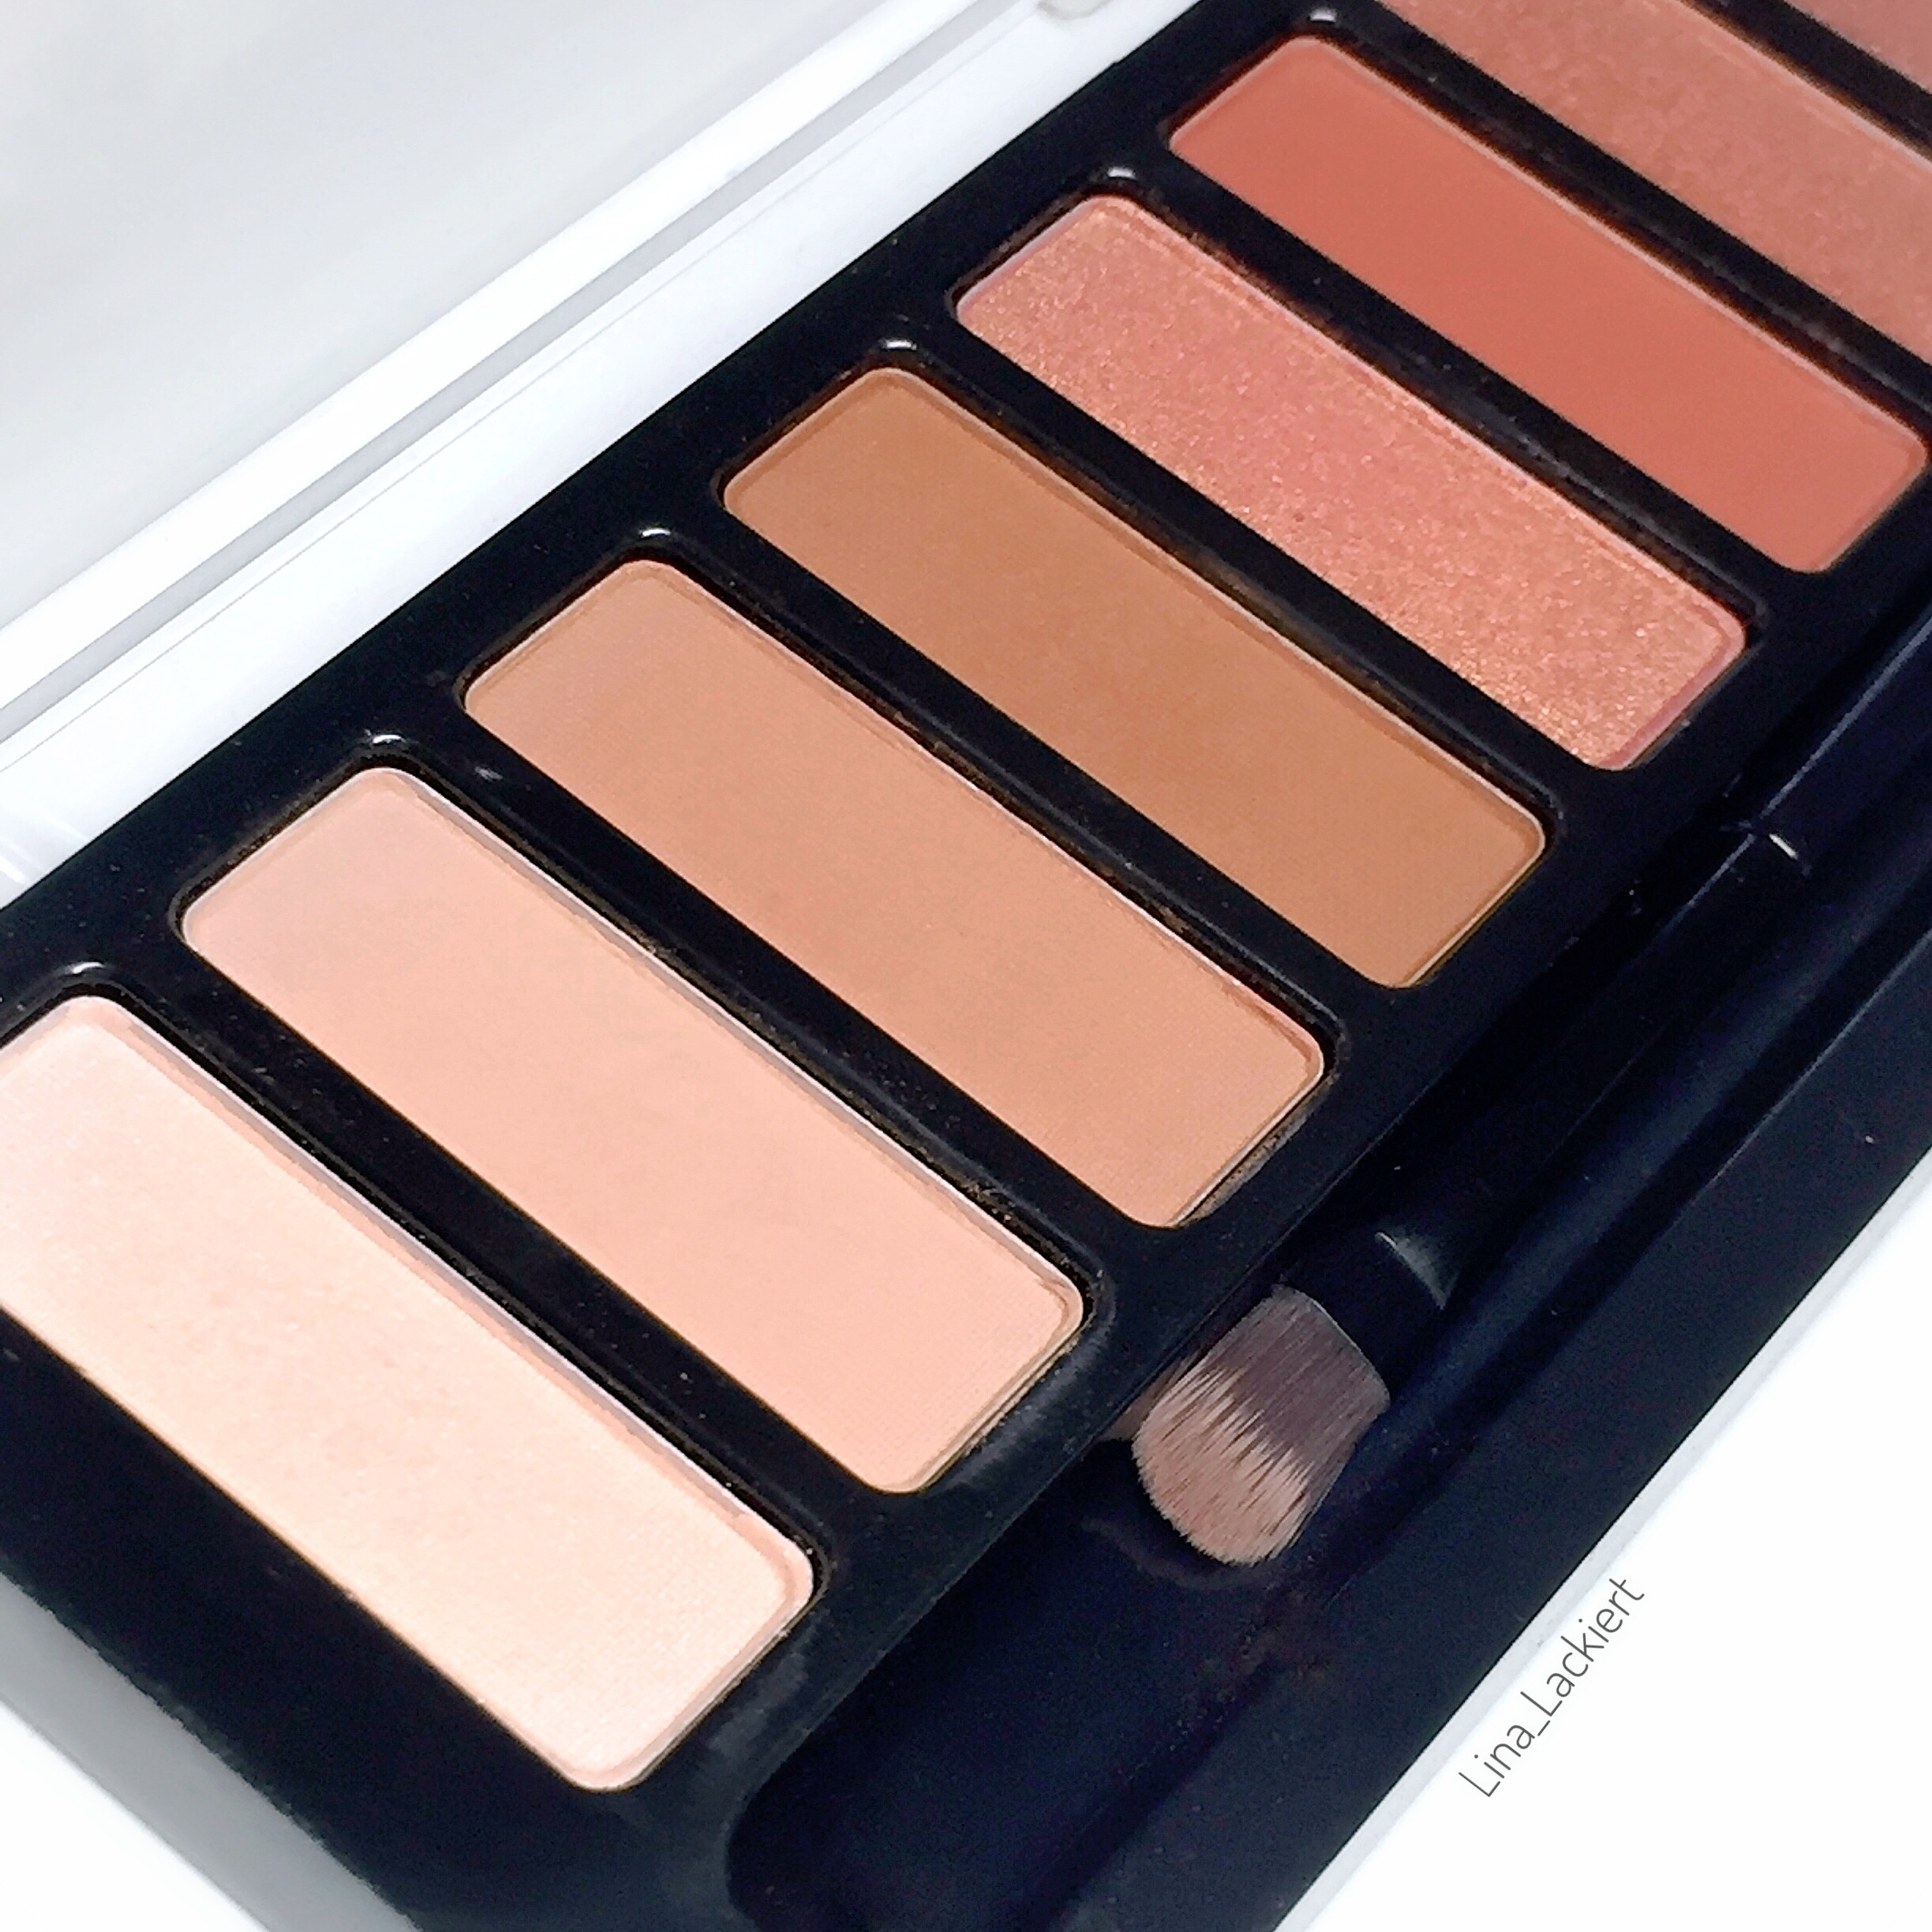 essence wanted sunset dreamers Te eyeshadow Palette